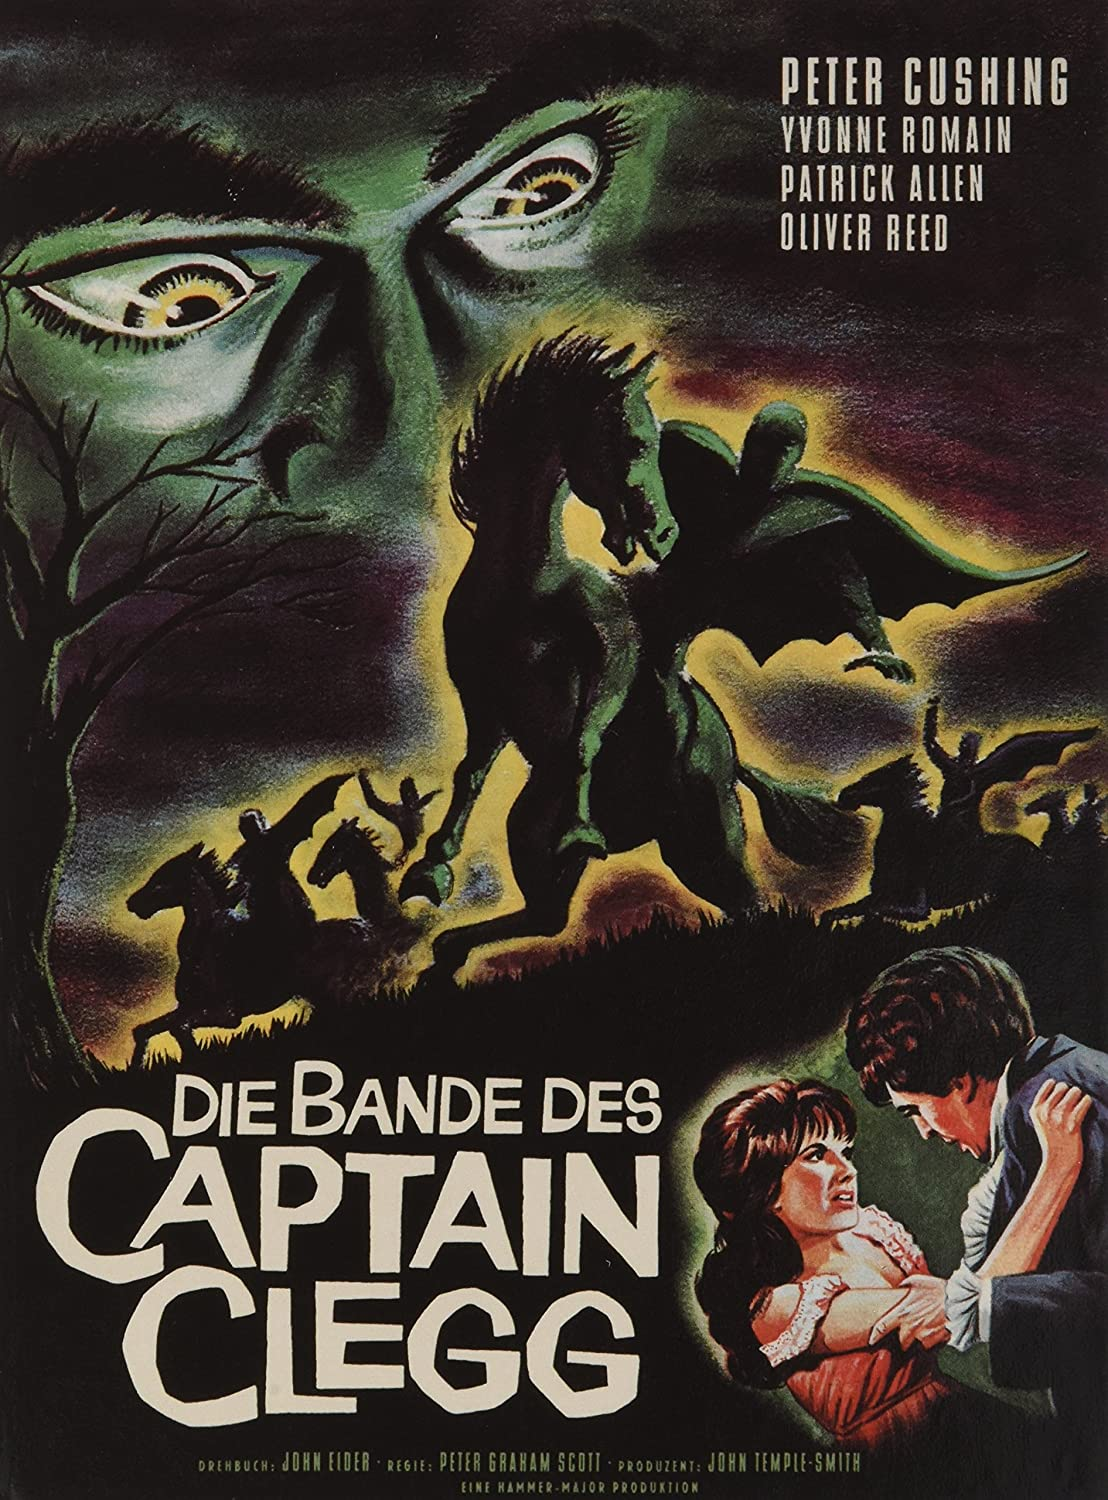 Die Our shop OFFers the best service Bande des Captain Clegg - Luxury Hammer Edition 14